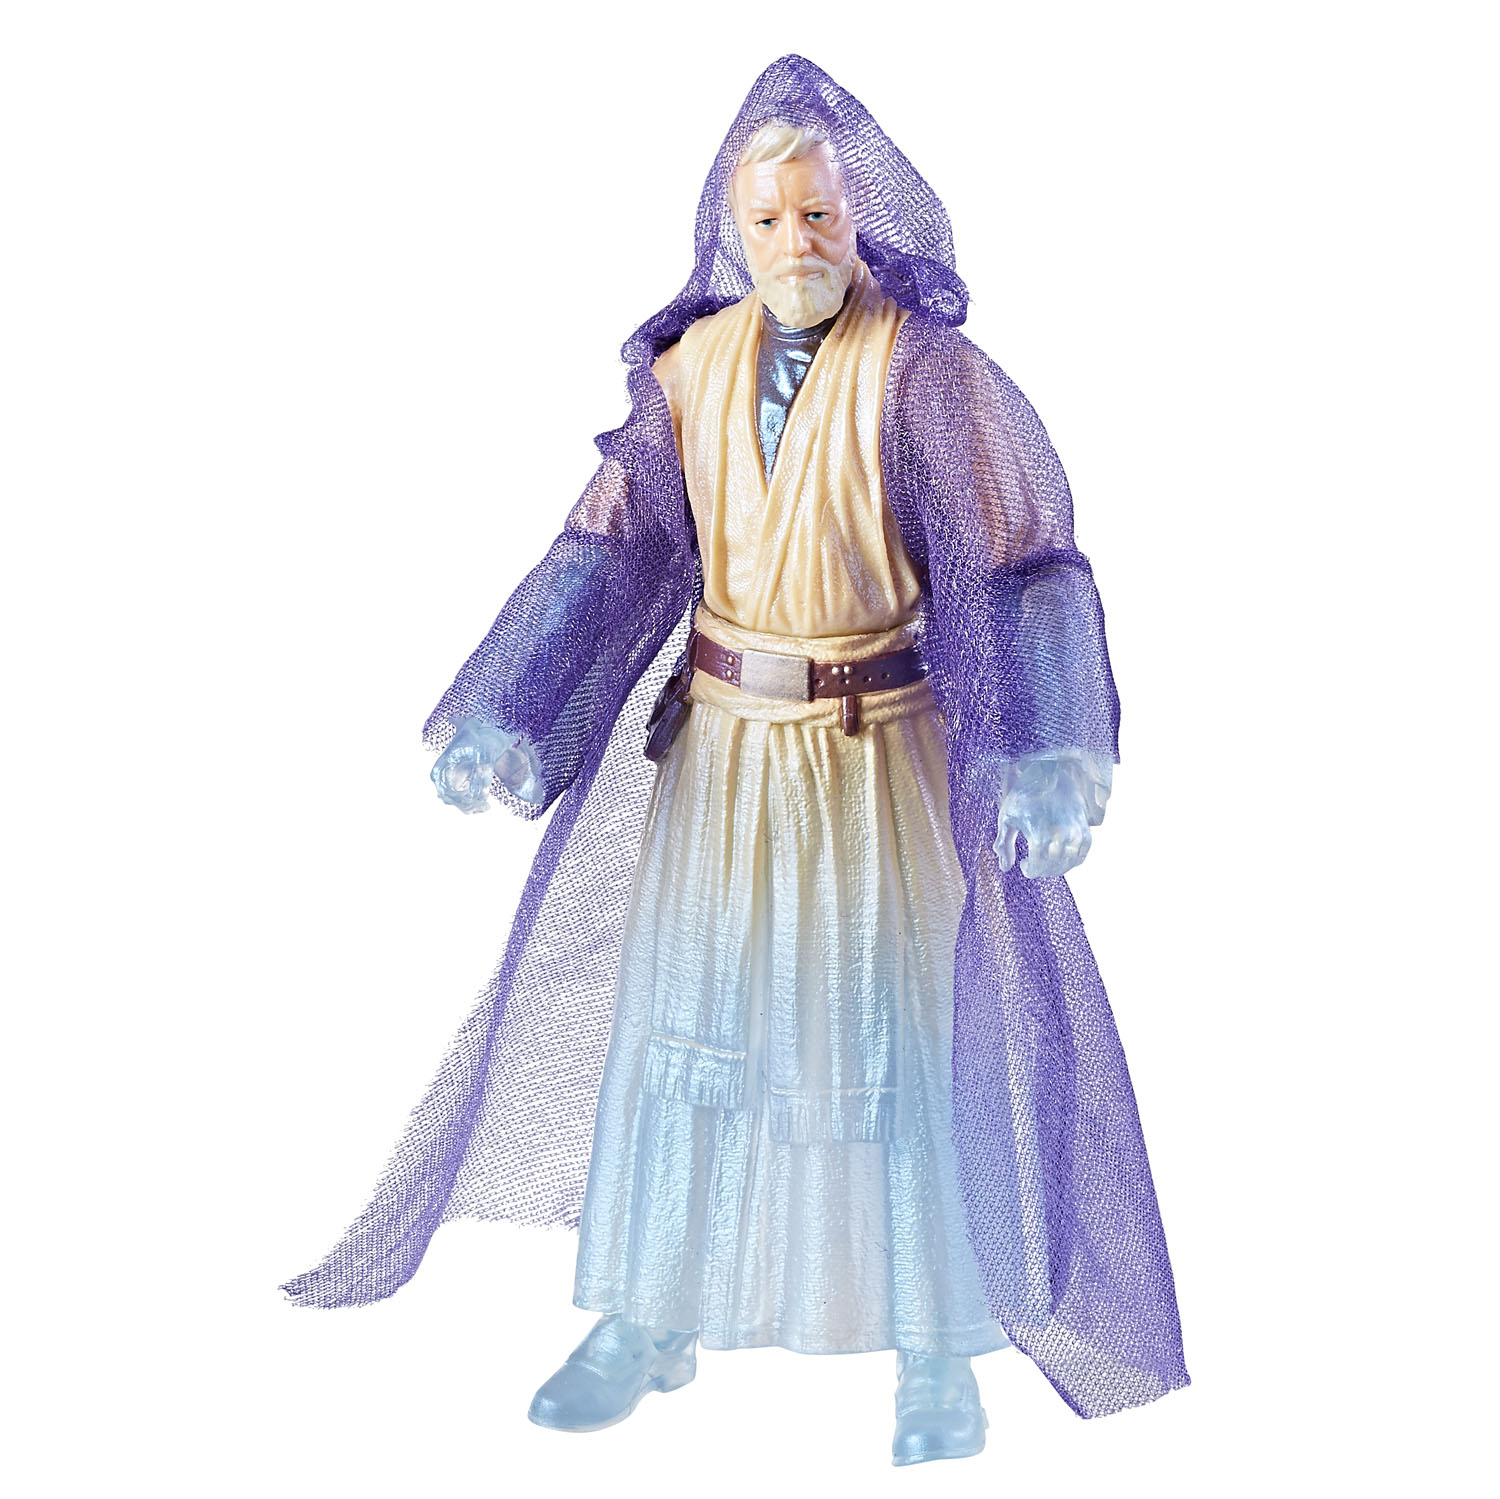 New Star Wars The Last Jedi Figures From Hasbro The